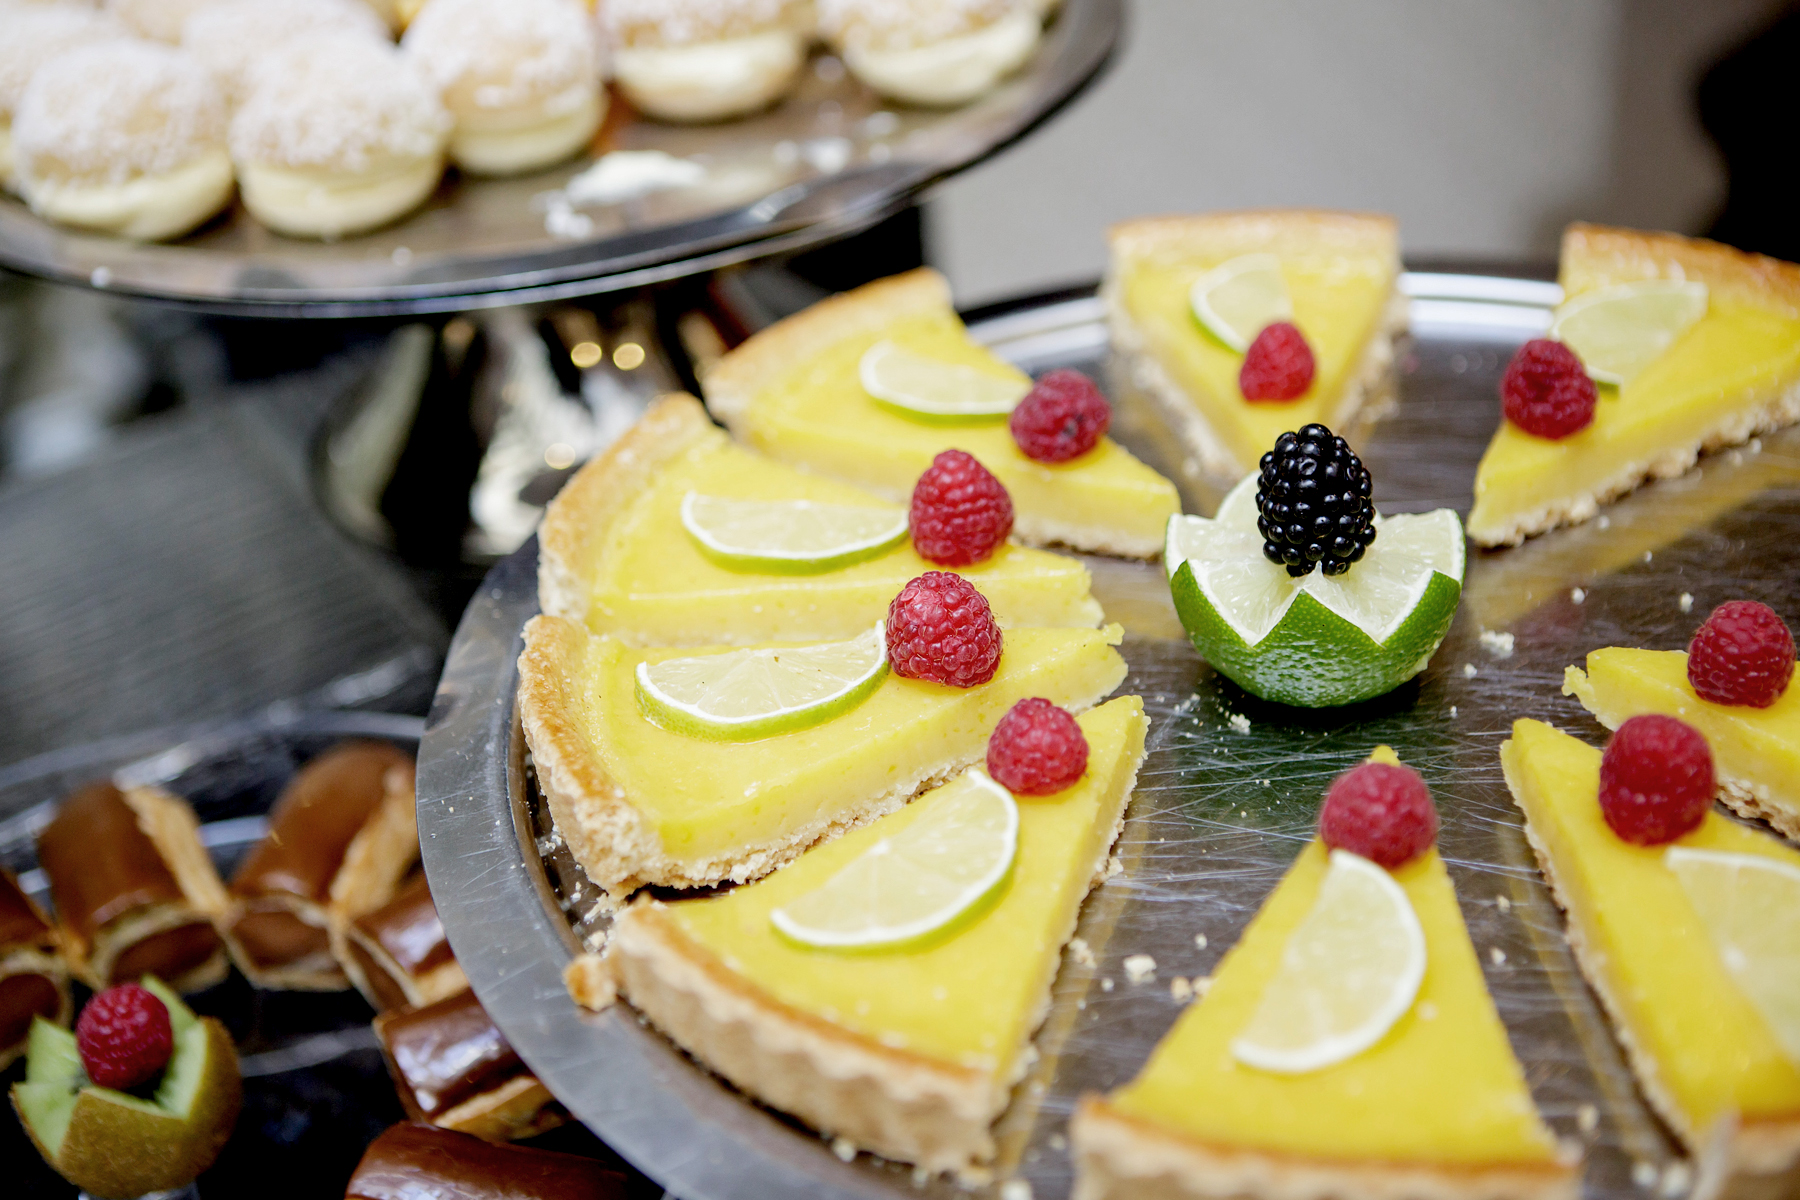 sweets paris tarte citron fruit cake le 123 sébastopol astotel hotel review boutique luxury treat fashion lifestyle blogger ricarda schernus cats & dogs blog 2